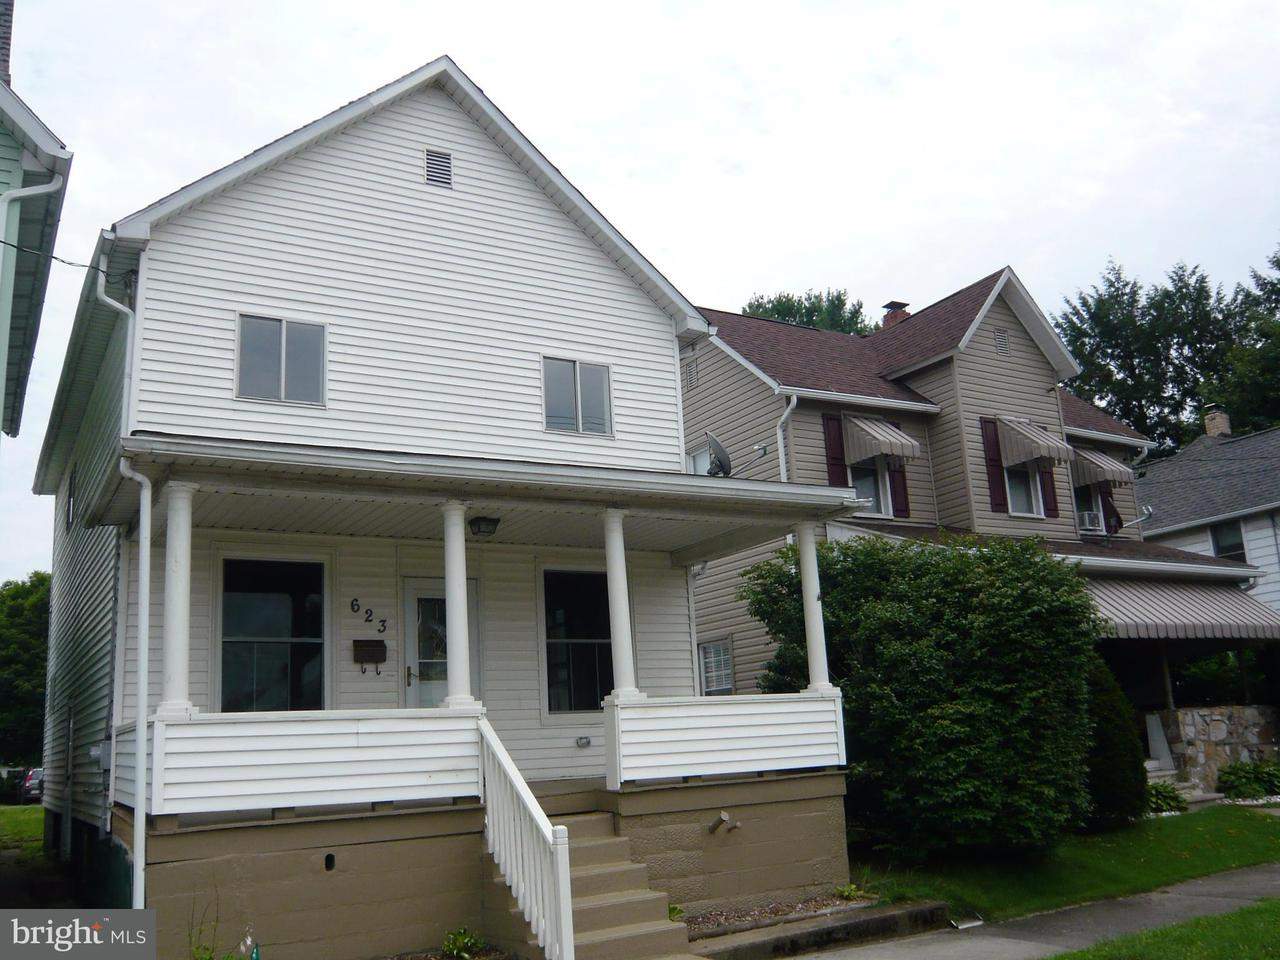 Single Family for Sale at 623 Willams Confluence, Pennsylvania 15424 United States